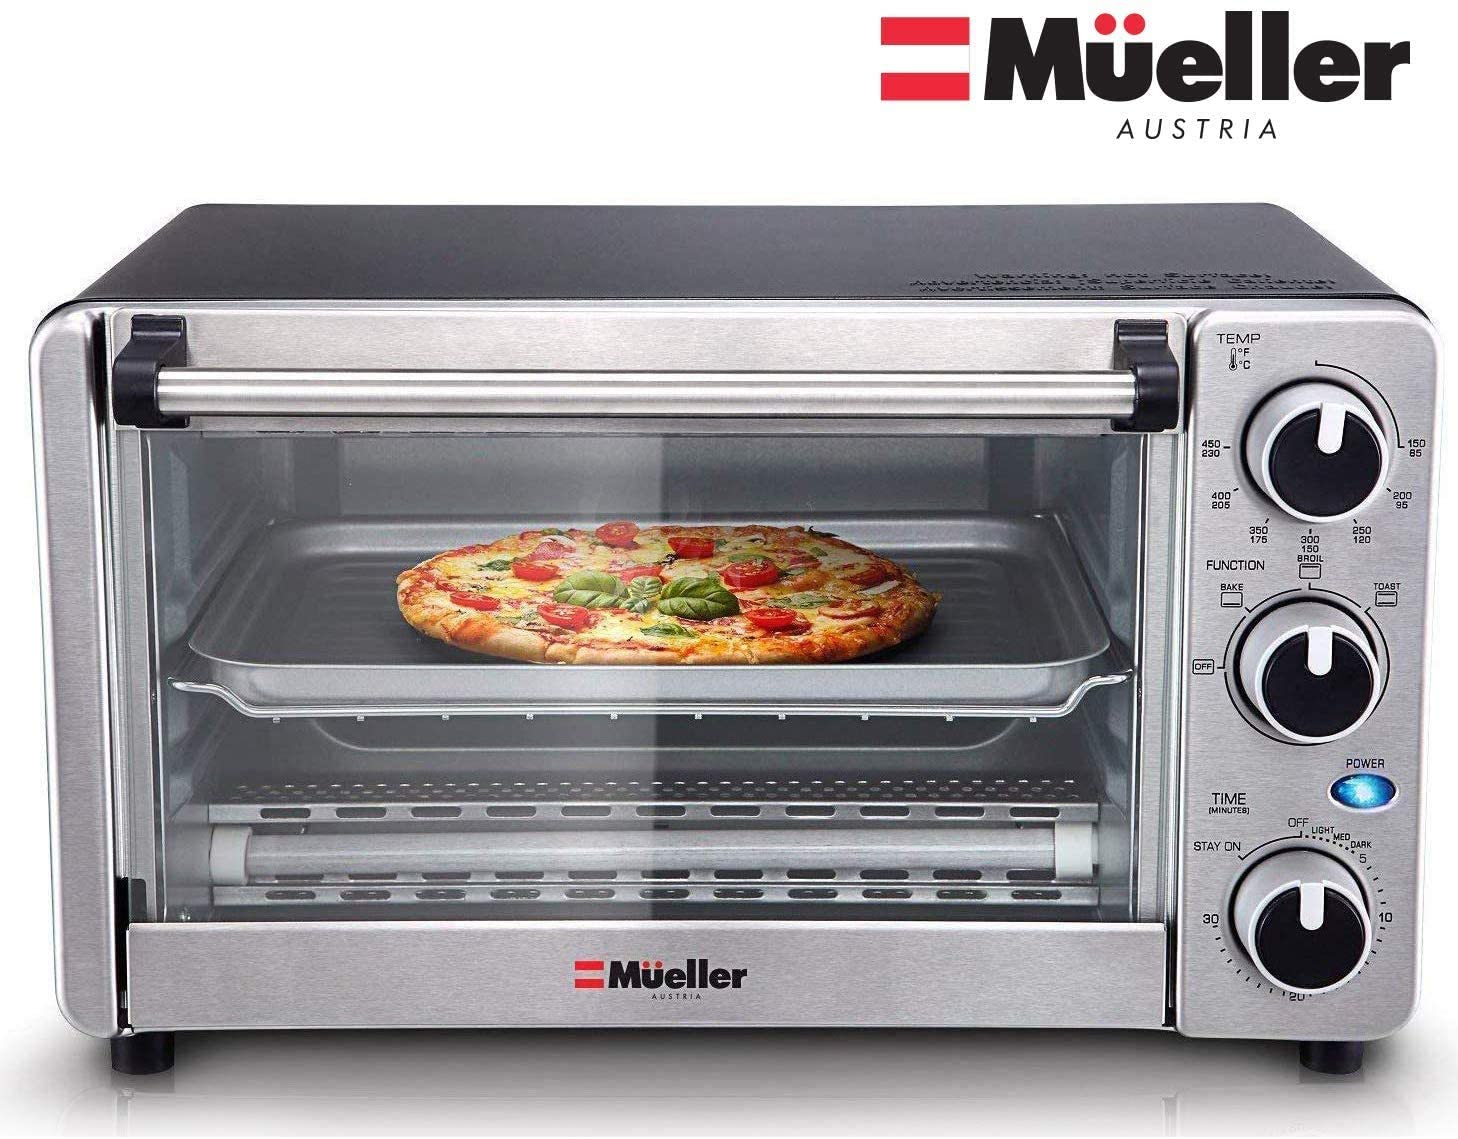 1. Mueller Multi-function Toaster Oven